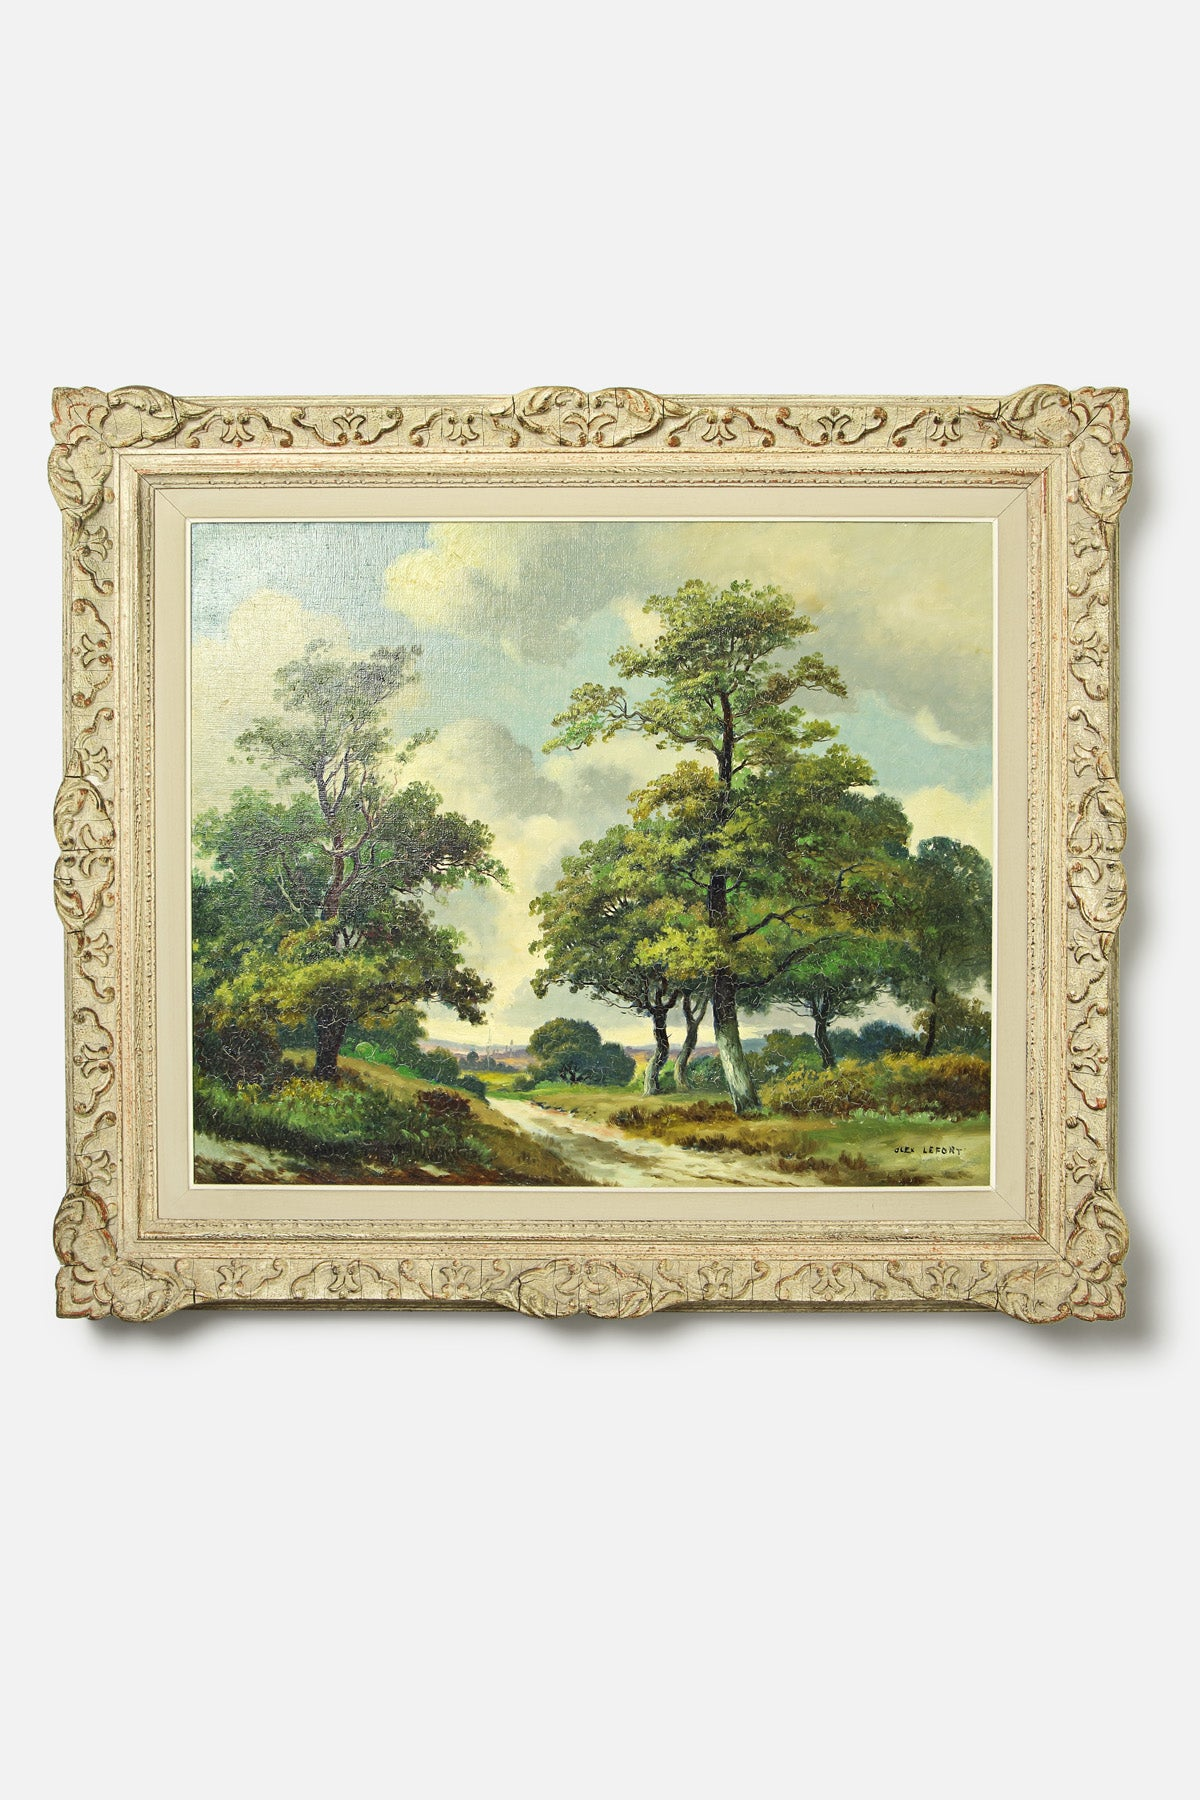 VINTAGE - FRENCH LANDSCAPE OIL PAINTING - ALEX LEFORT - Fortune Goods